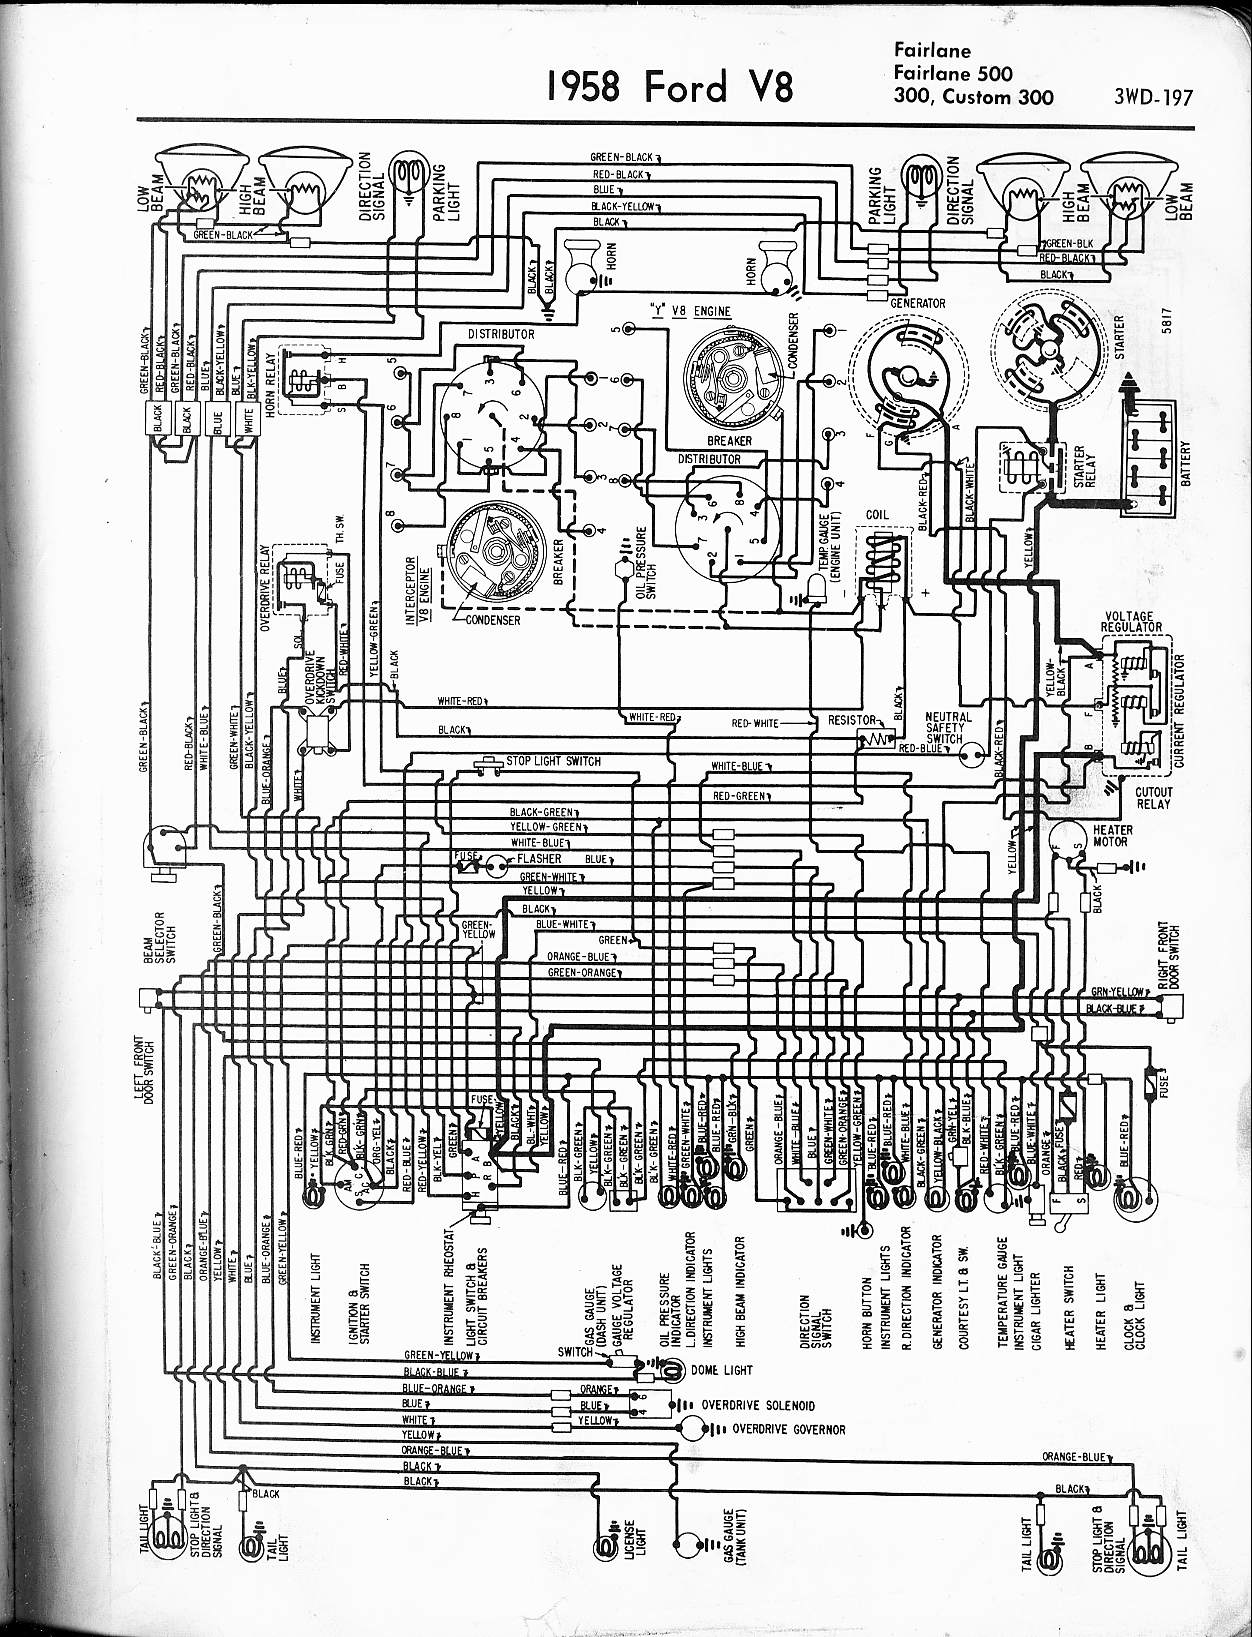 wiring diagram 1957 ford fairlane wiring diagram u2022 rh tinyforge co 1956 Ford Fairlane Wiring-Diagram 1956 Ford Fairlane Wiring-Diagram